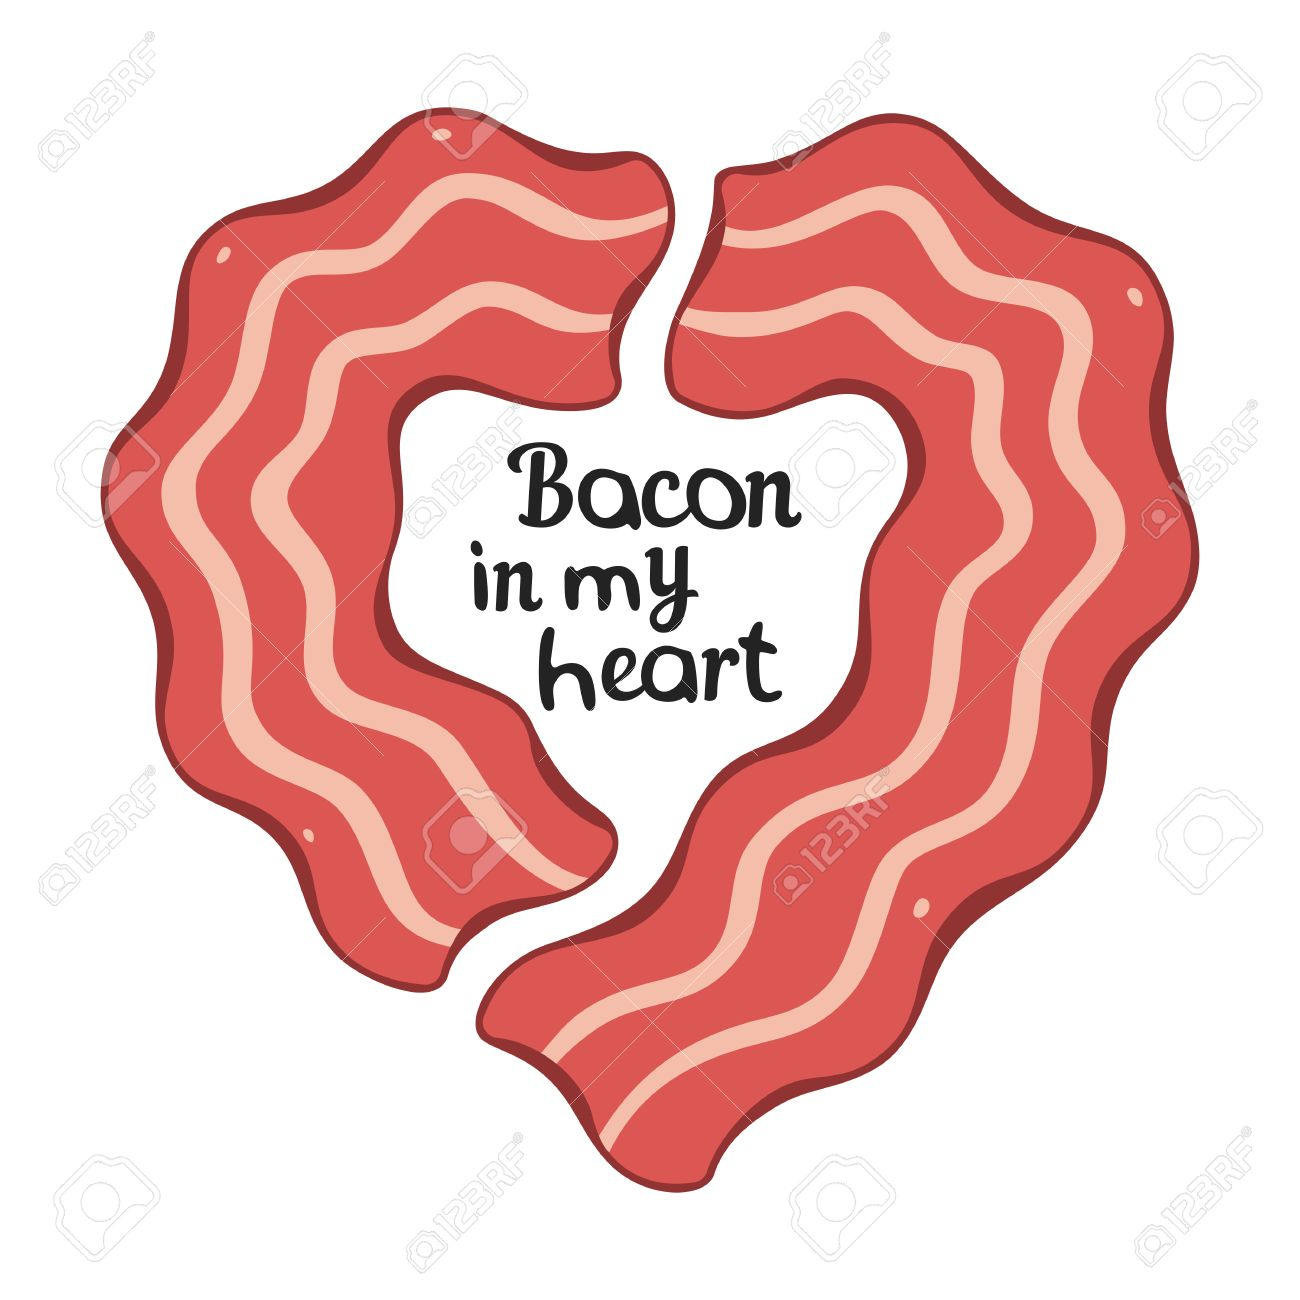 Heart design t shirt - Bacon Heart Design Template For T Shirt Or Other Works Stock Vector 44276466